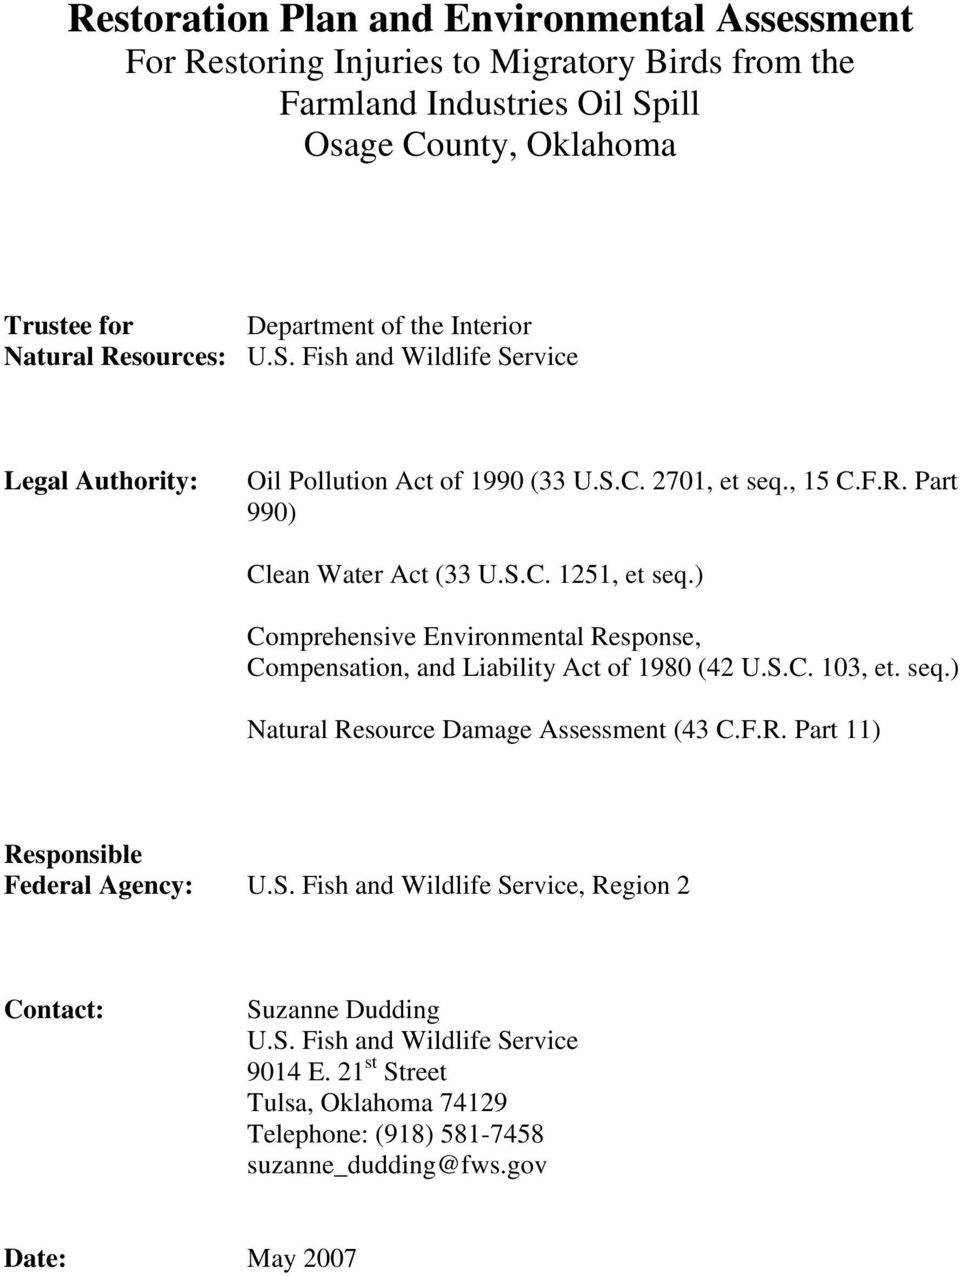 ) Comprehensive Environmental Response, Compensation, and Liability Act of 1980 (42 U.S.C. 103, et. seq.) Natural Resource Damage Assessment (43 C.F.R. Part 11) Responsible Federal Agency: U.